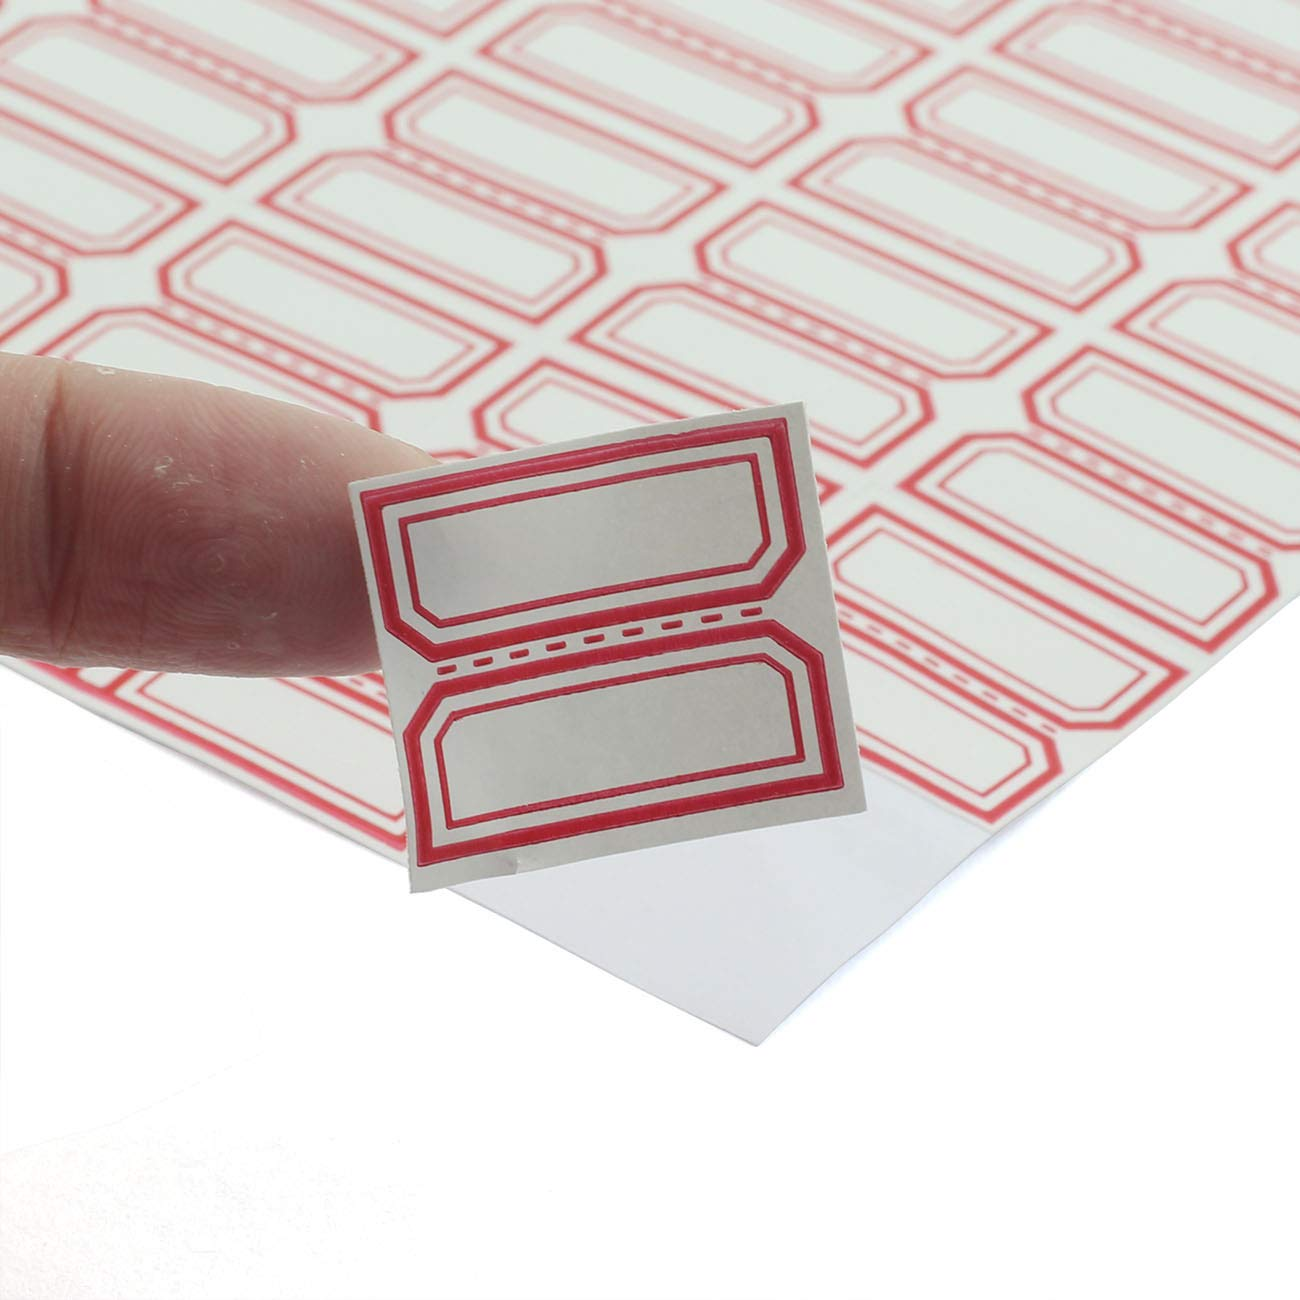 PZRT 12 Sheet//192pcs Self-Adhesive Label Stickers for Laboratory Label Product Classification Stationery Stickers Price Tag Post Writable Blank Sticker 5x2.9cm Three Spaces